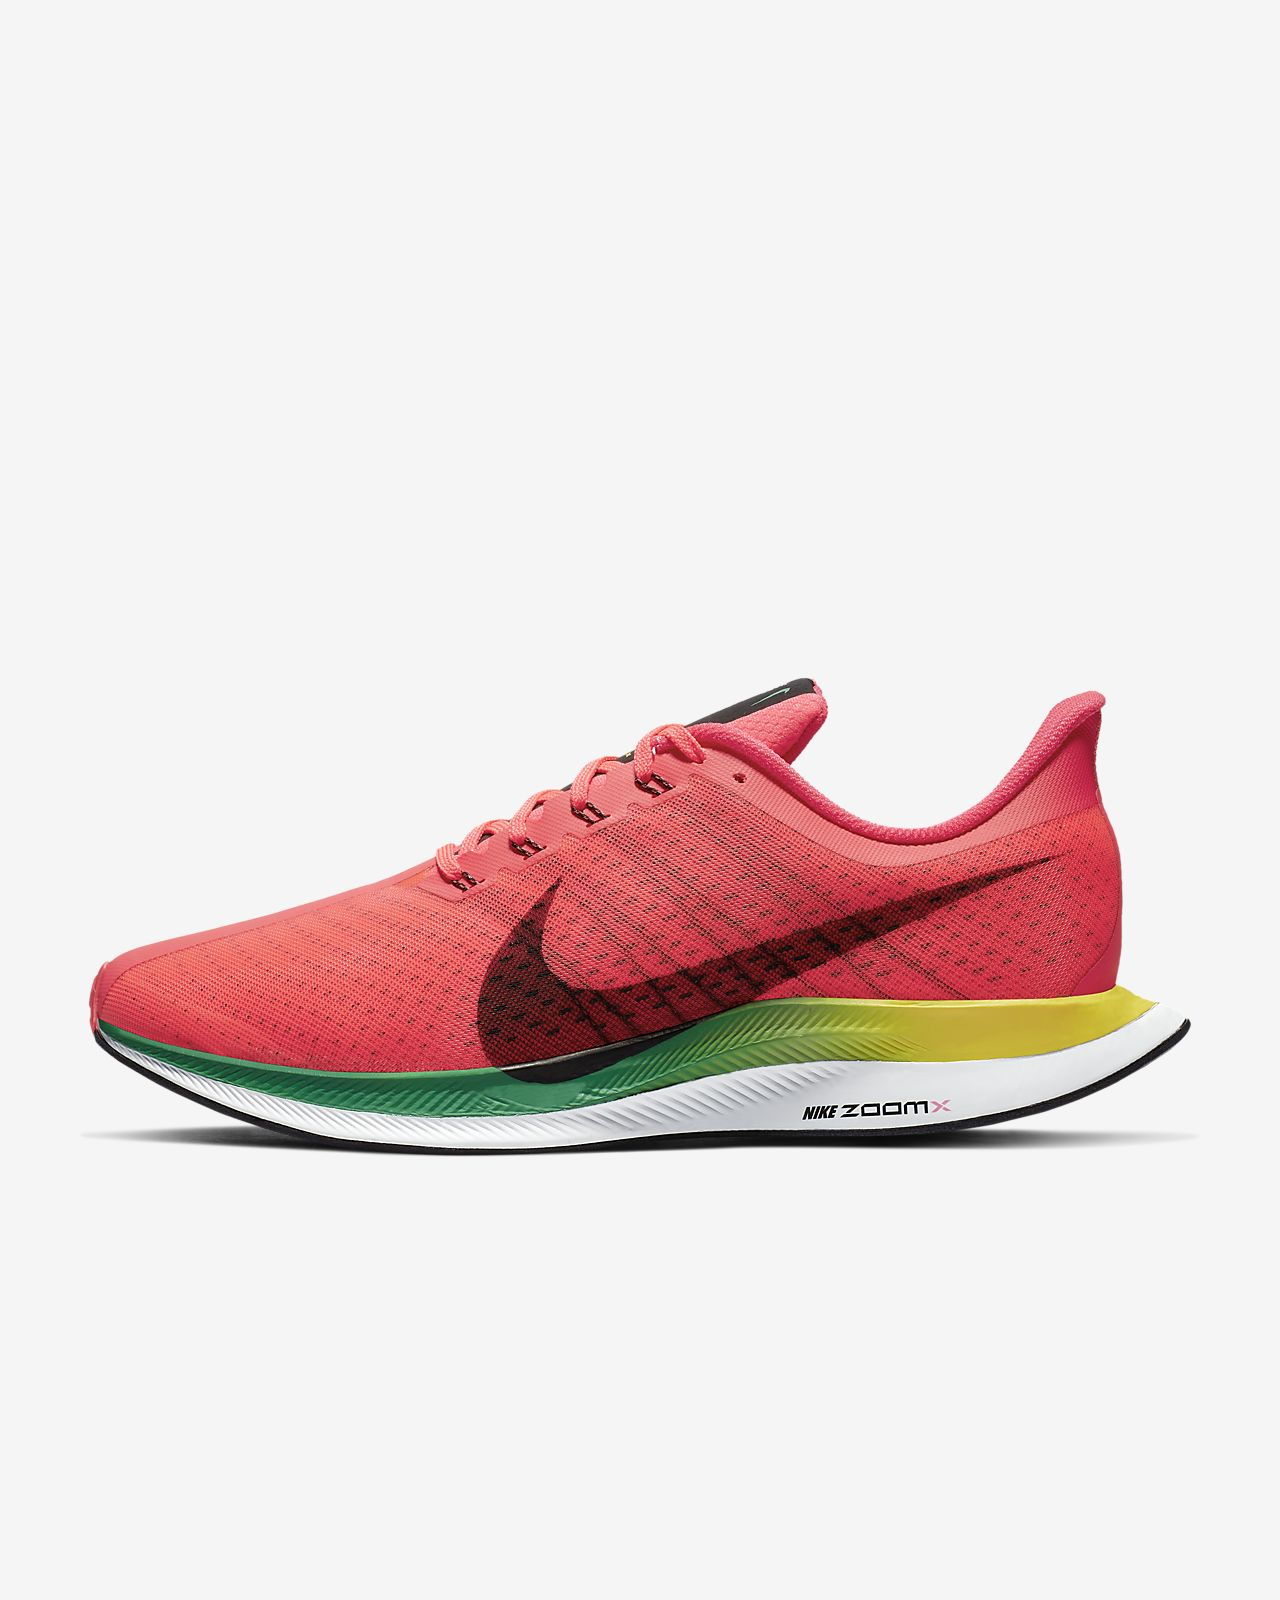 new arrival 1a583 49f90 ... Nike Zoom Pegasus Turbo Men s Running Shoe